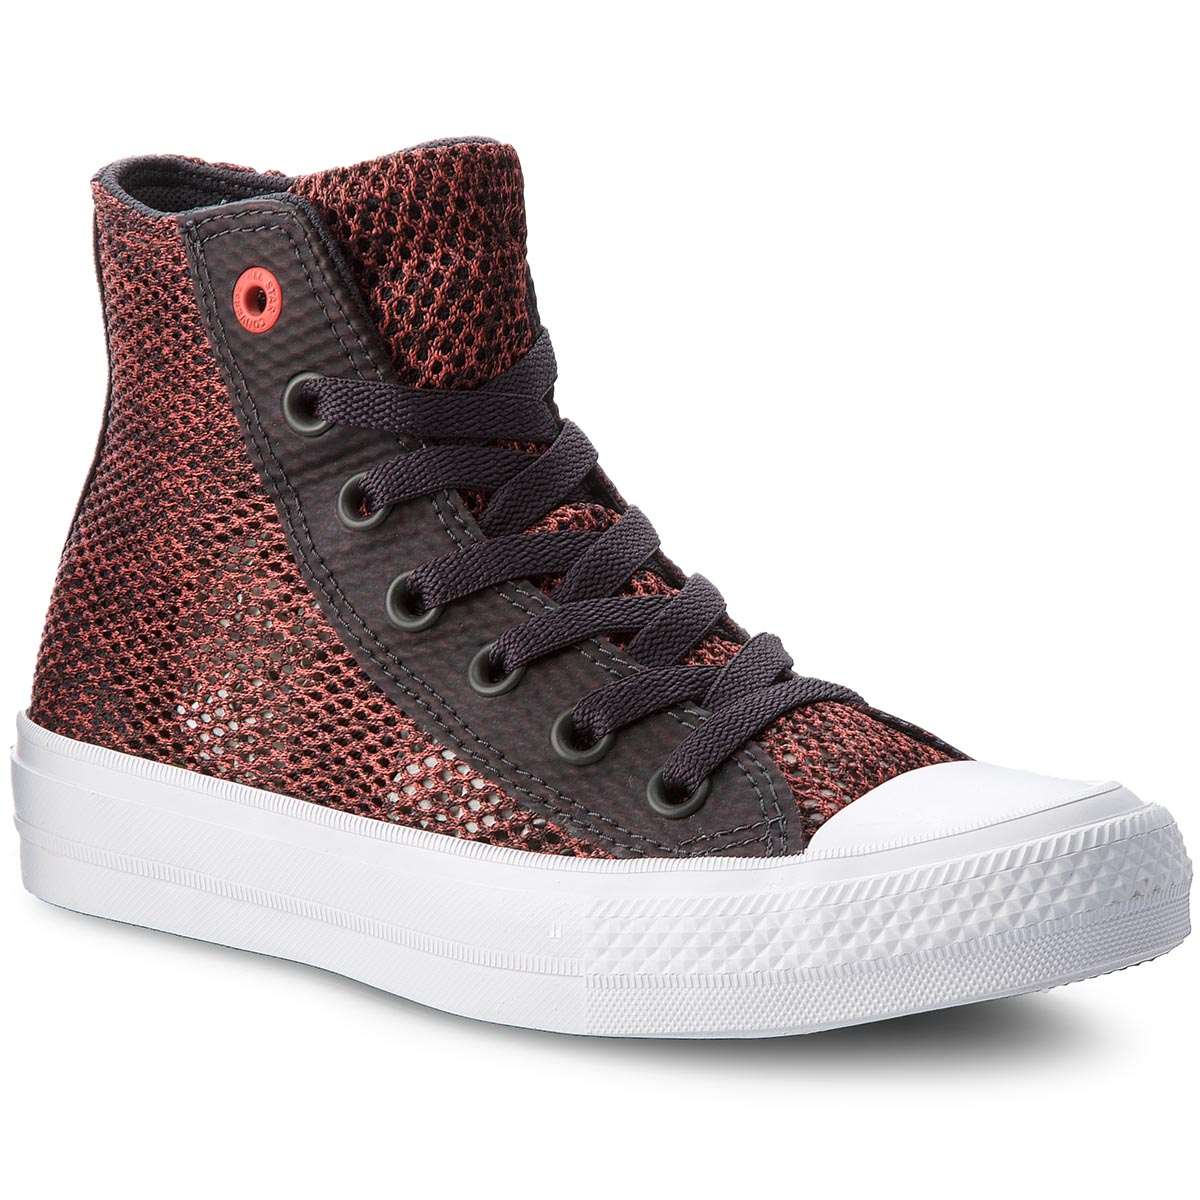 Teniși Converse - Ctas Ii Hi 155729c Almost Black/Ultra Red/White imagine epantofi.ro 2021